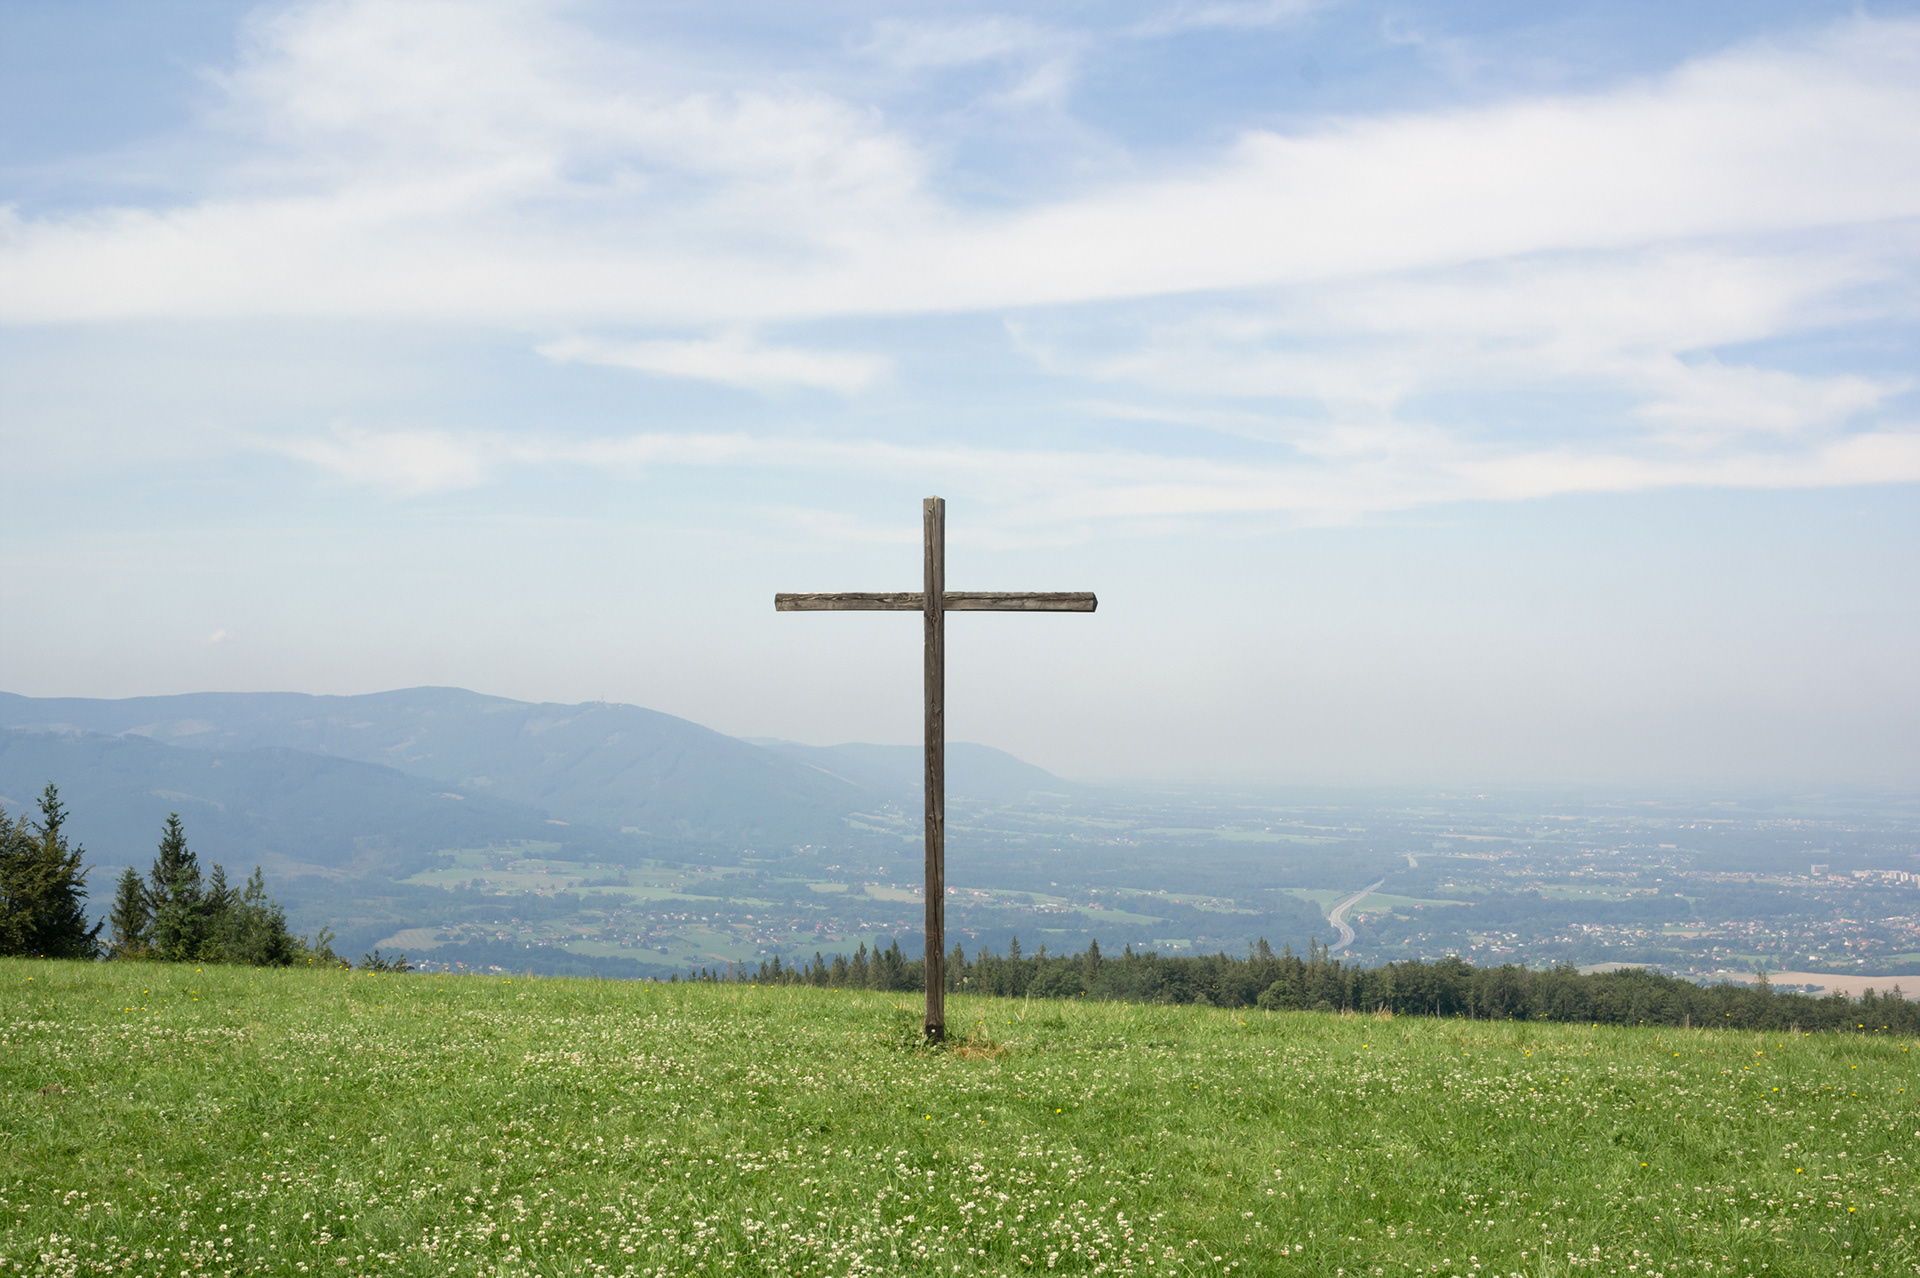 Christian cross and crucifix made of wood. Religious symbol in nature. Loučka, Beskid mountains, Czech Republic